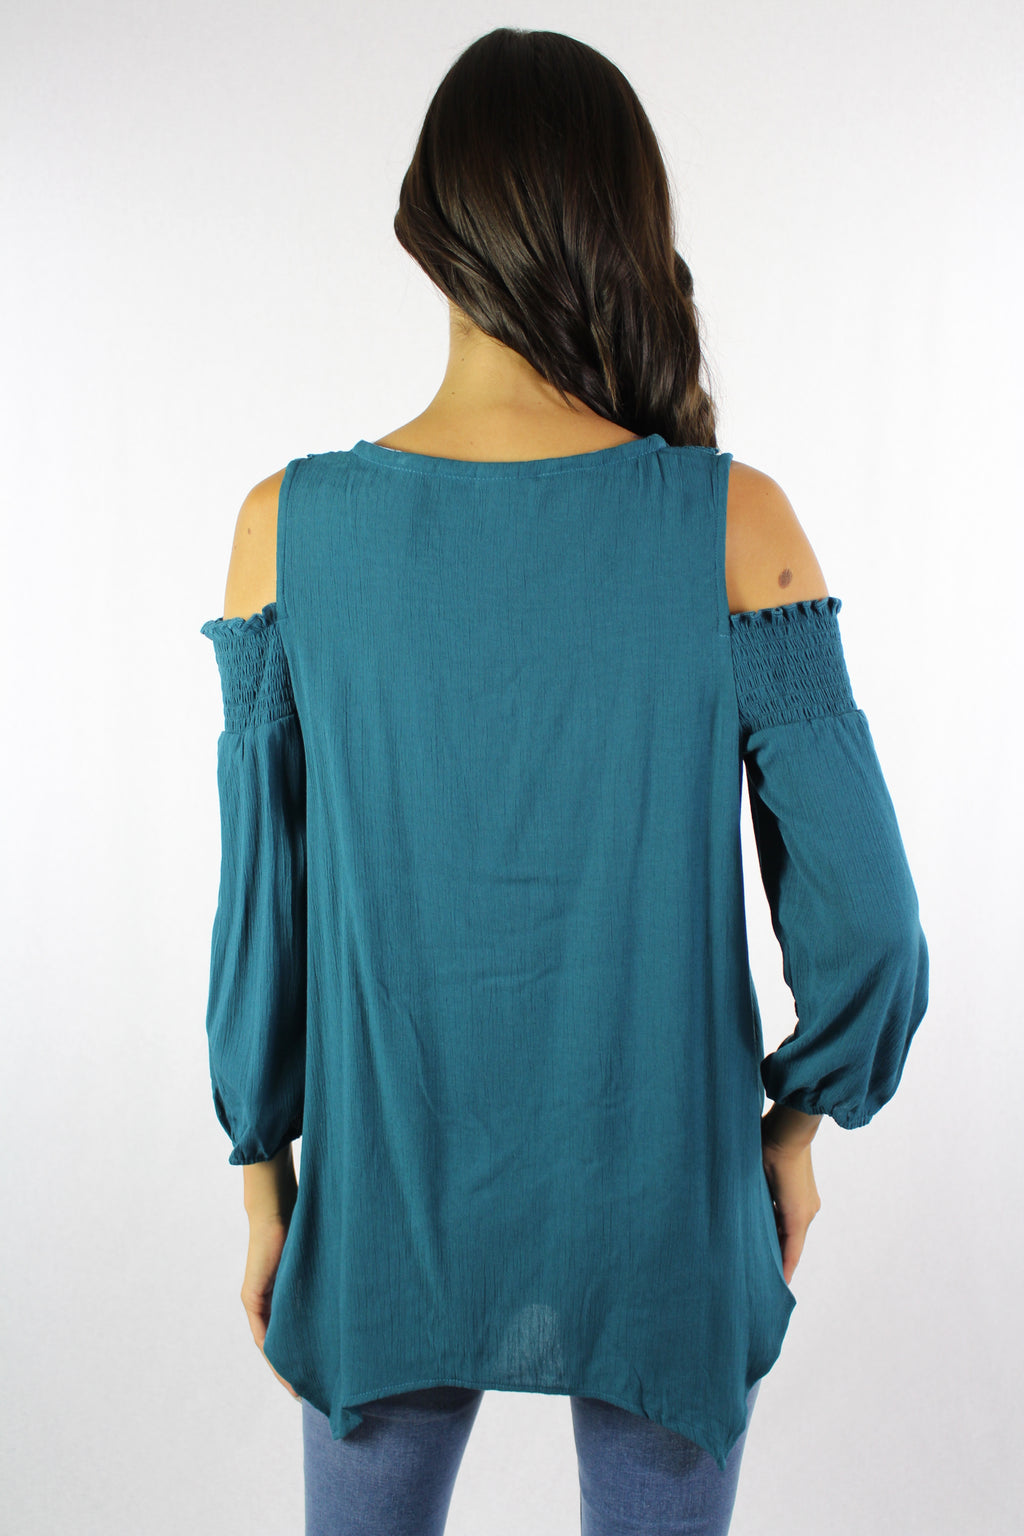 Women's 3/4th Sleeve Cold Shoulder Top with Crochet Detail